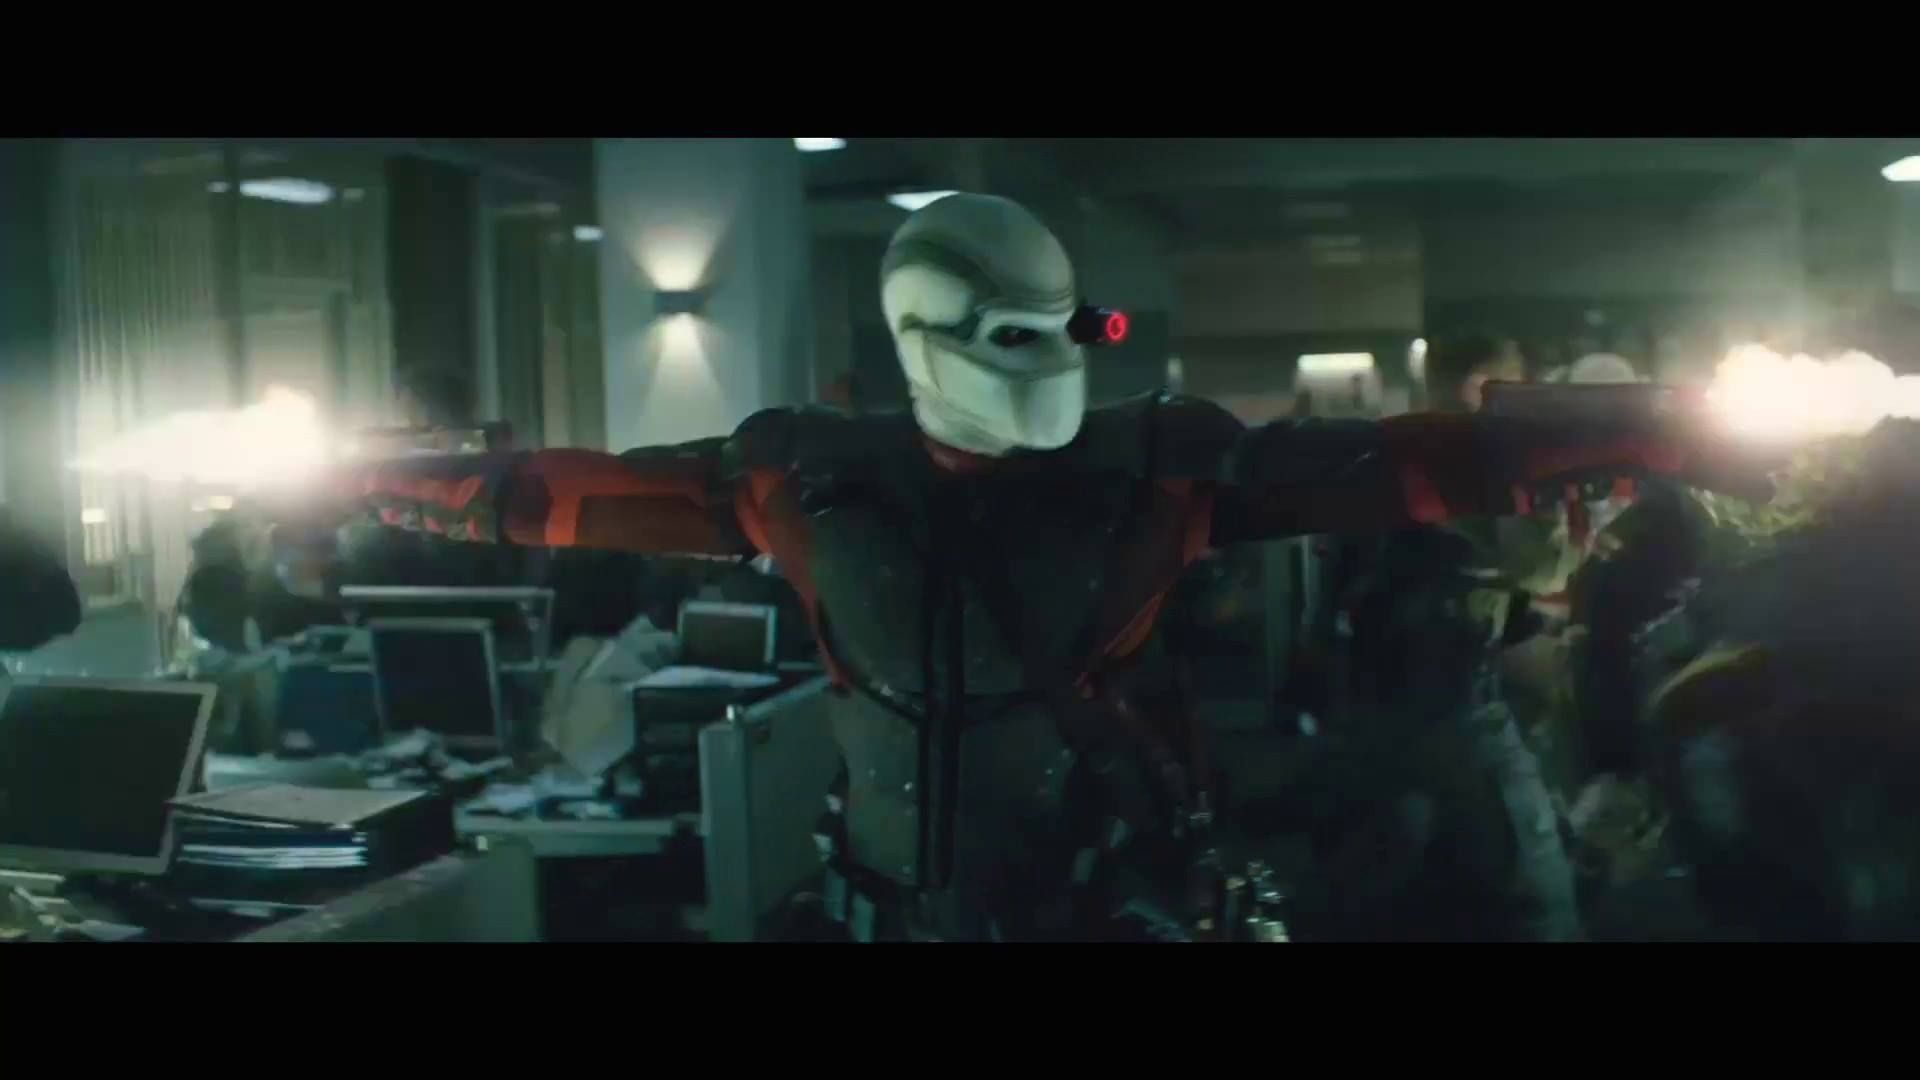 #deadshot #floydlawton #willsmith #suicidesquad #swad #sucidesquadmovie #dcfilms #dccomics #geek